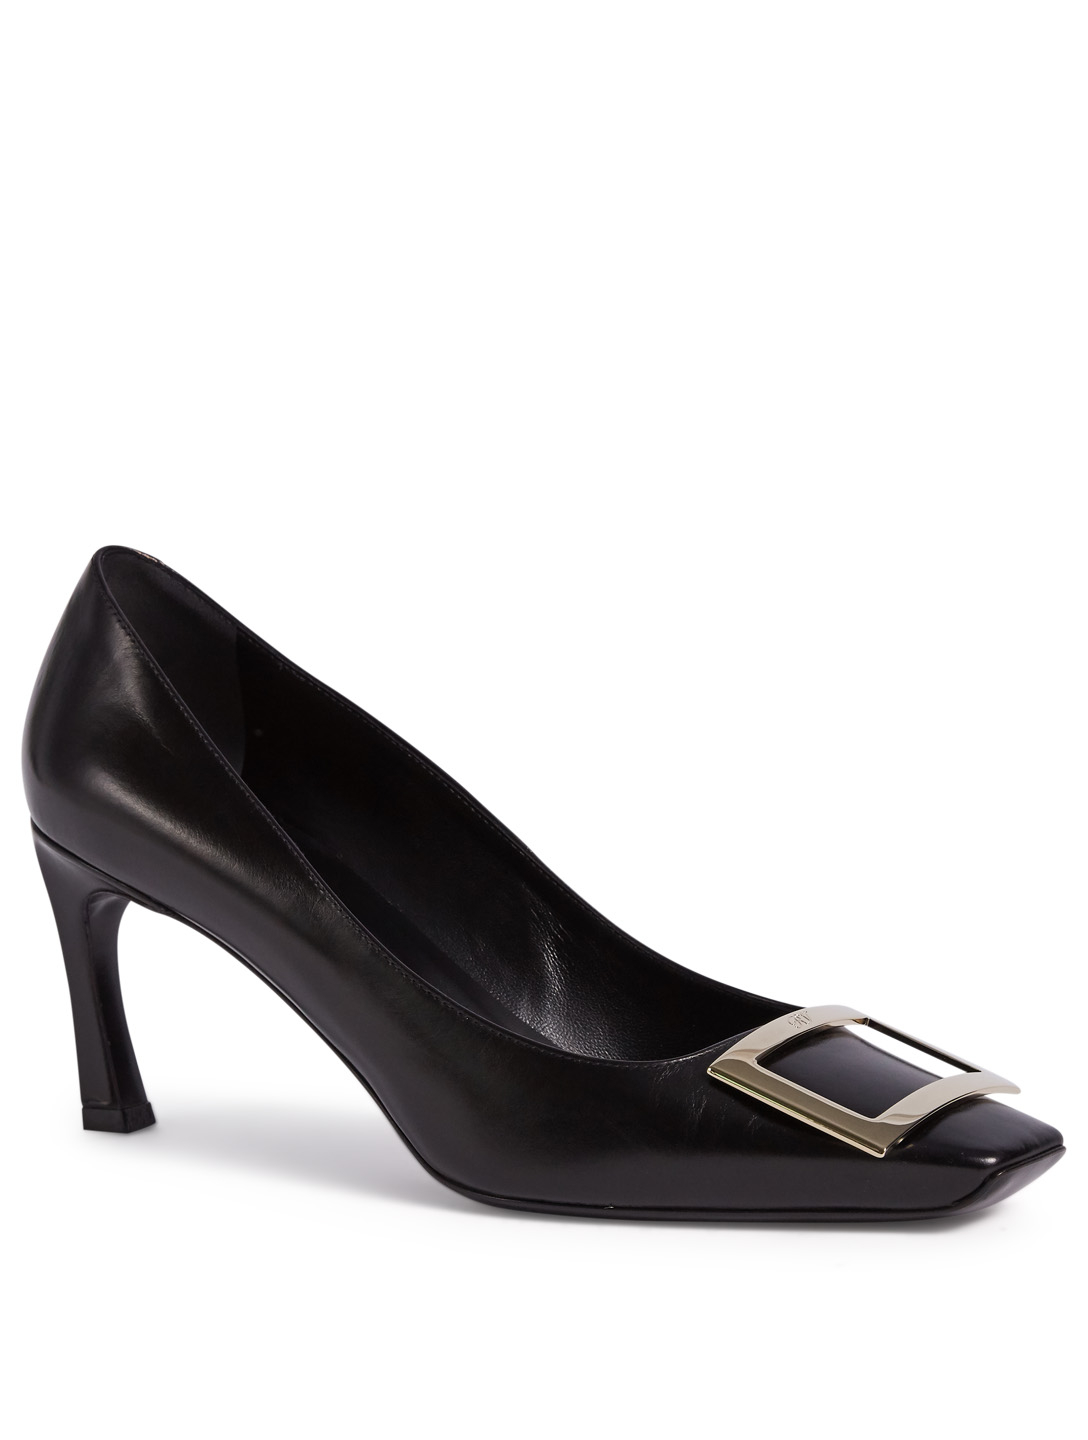 ROGER VIVIER Belle Vivier Trompette Leather Pumps Womens Black